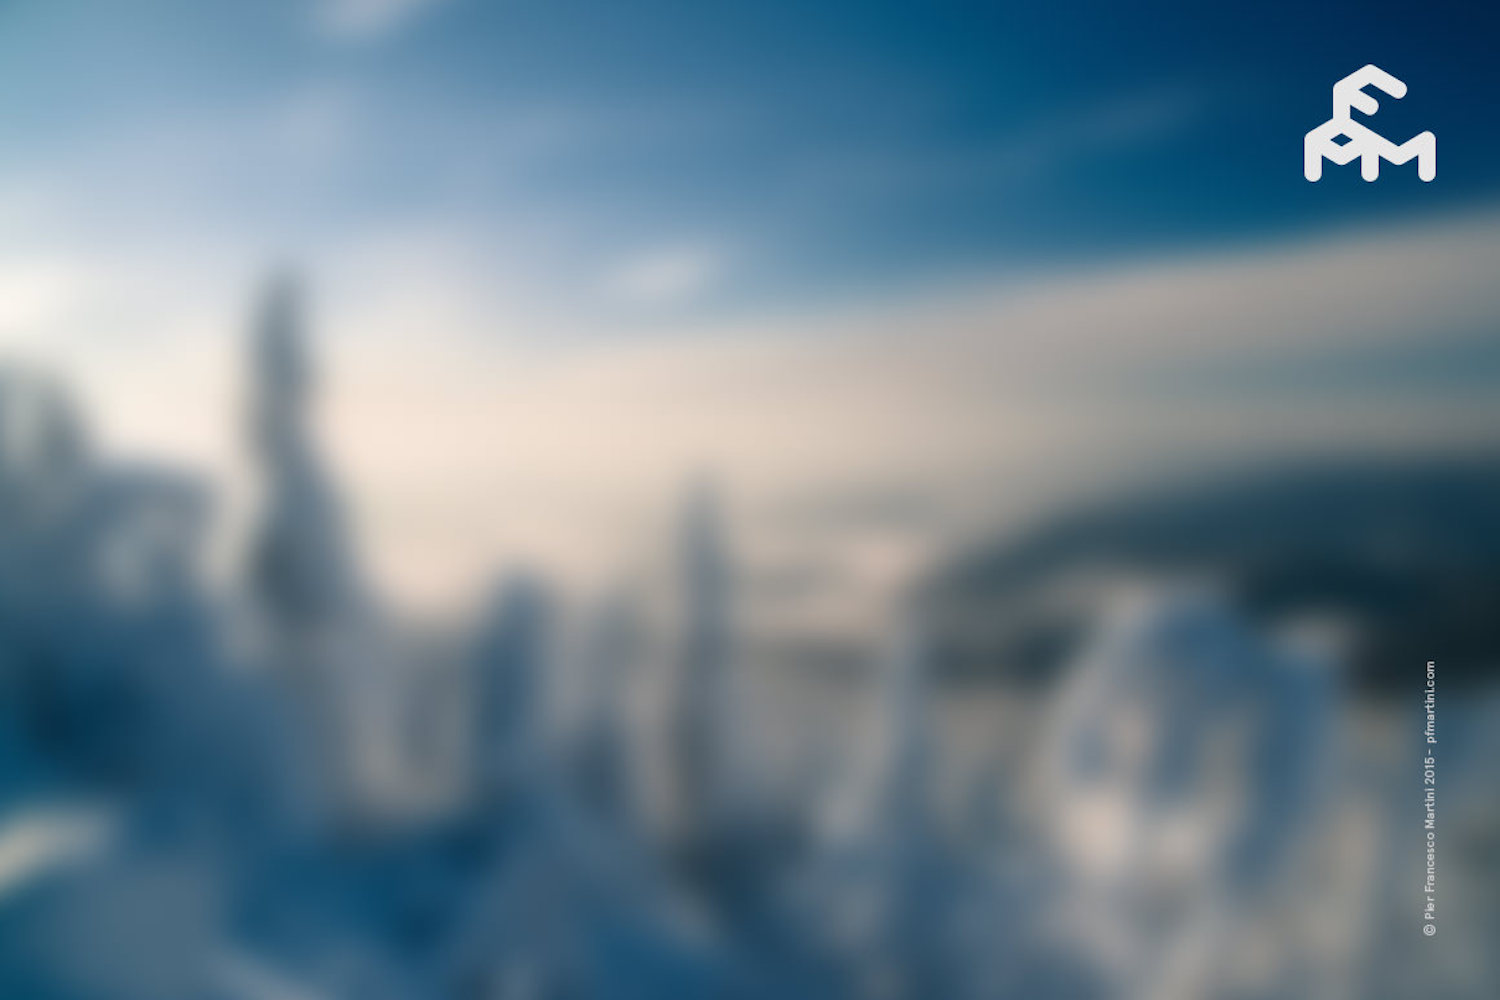 20 Winter Blurred Backgrounds example image 3